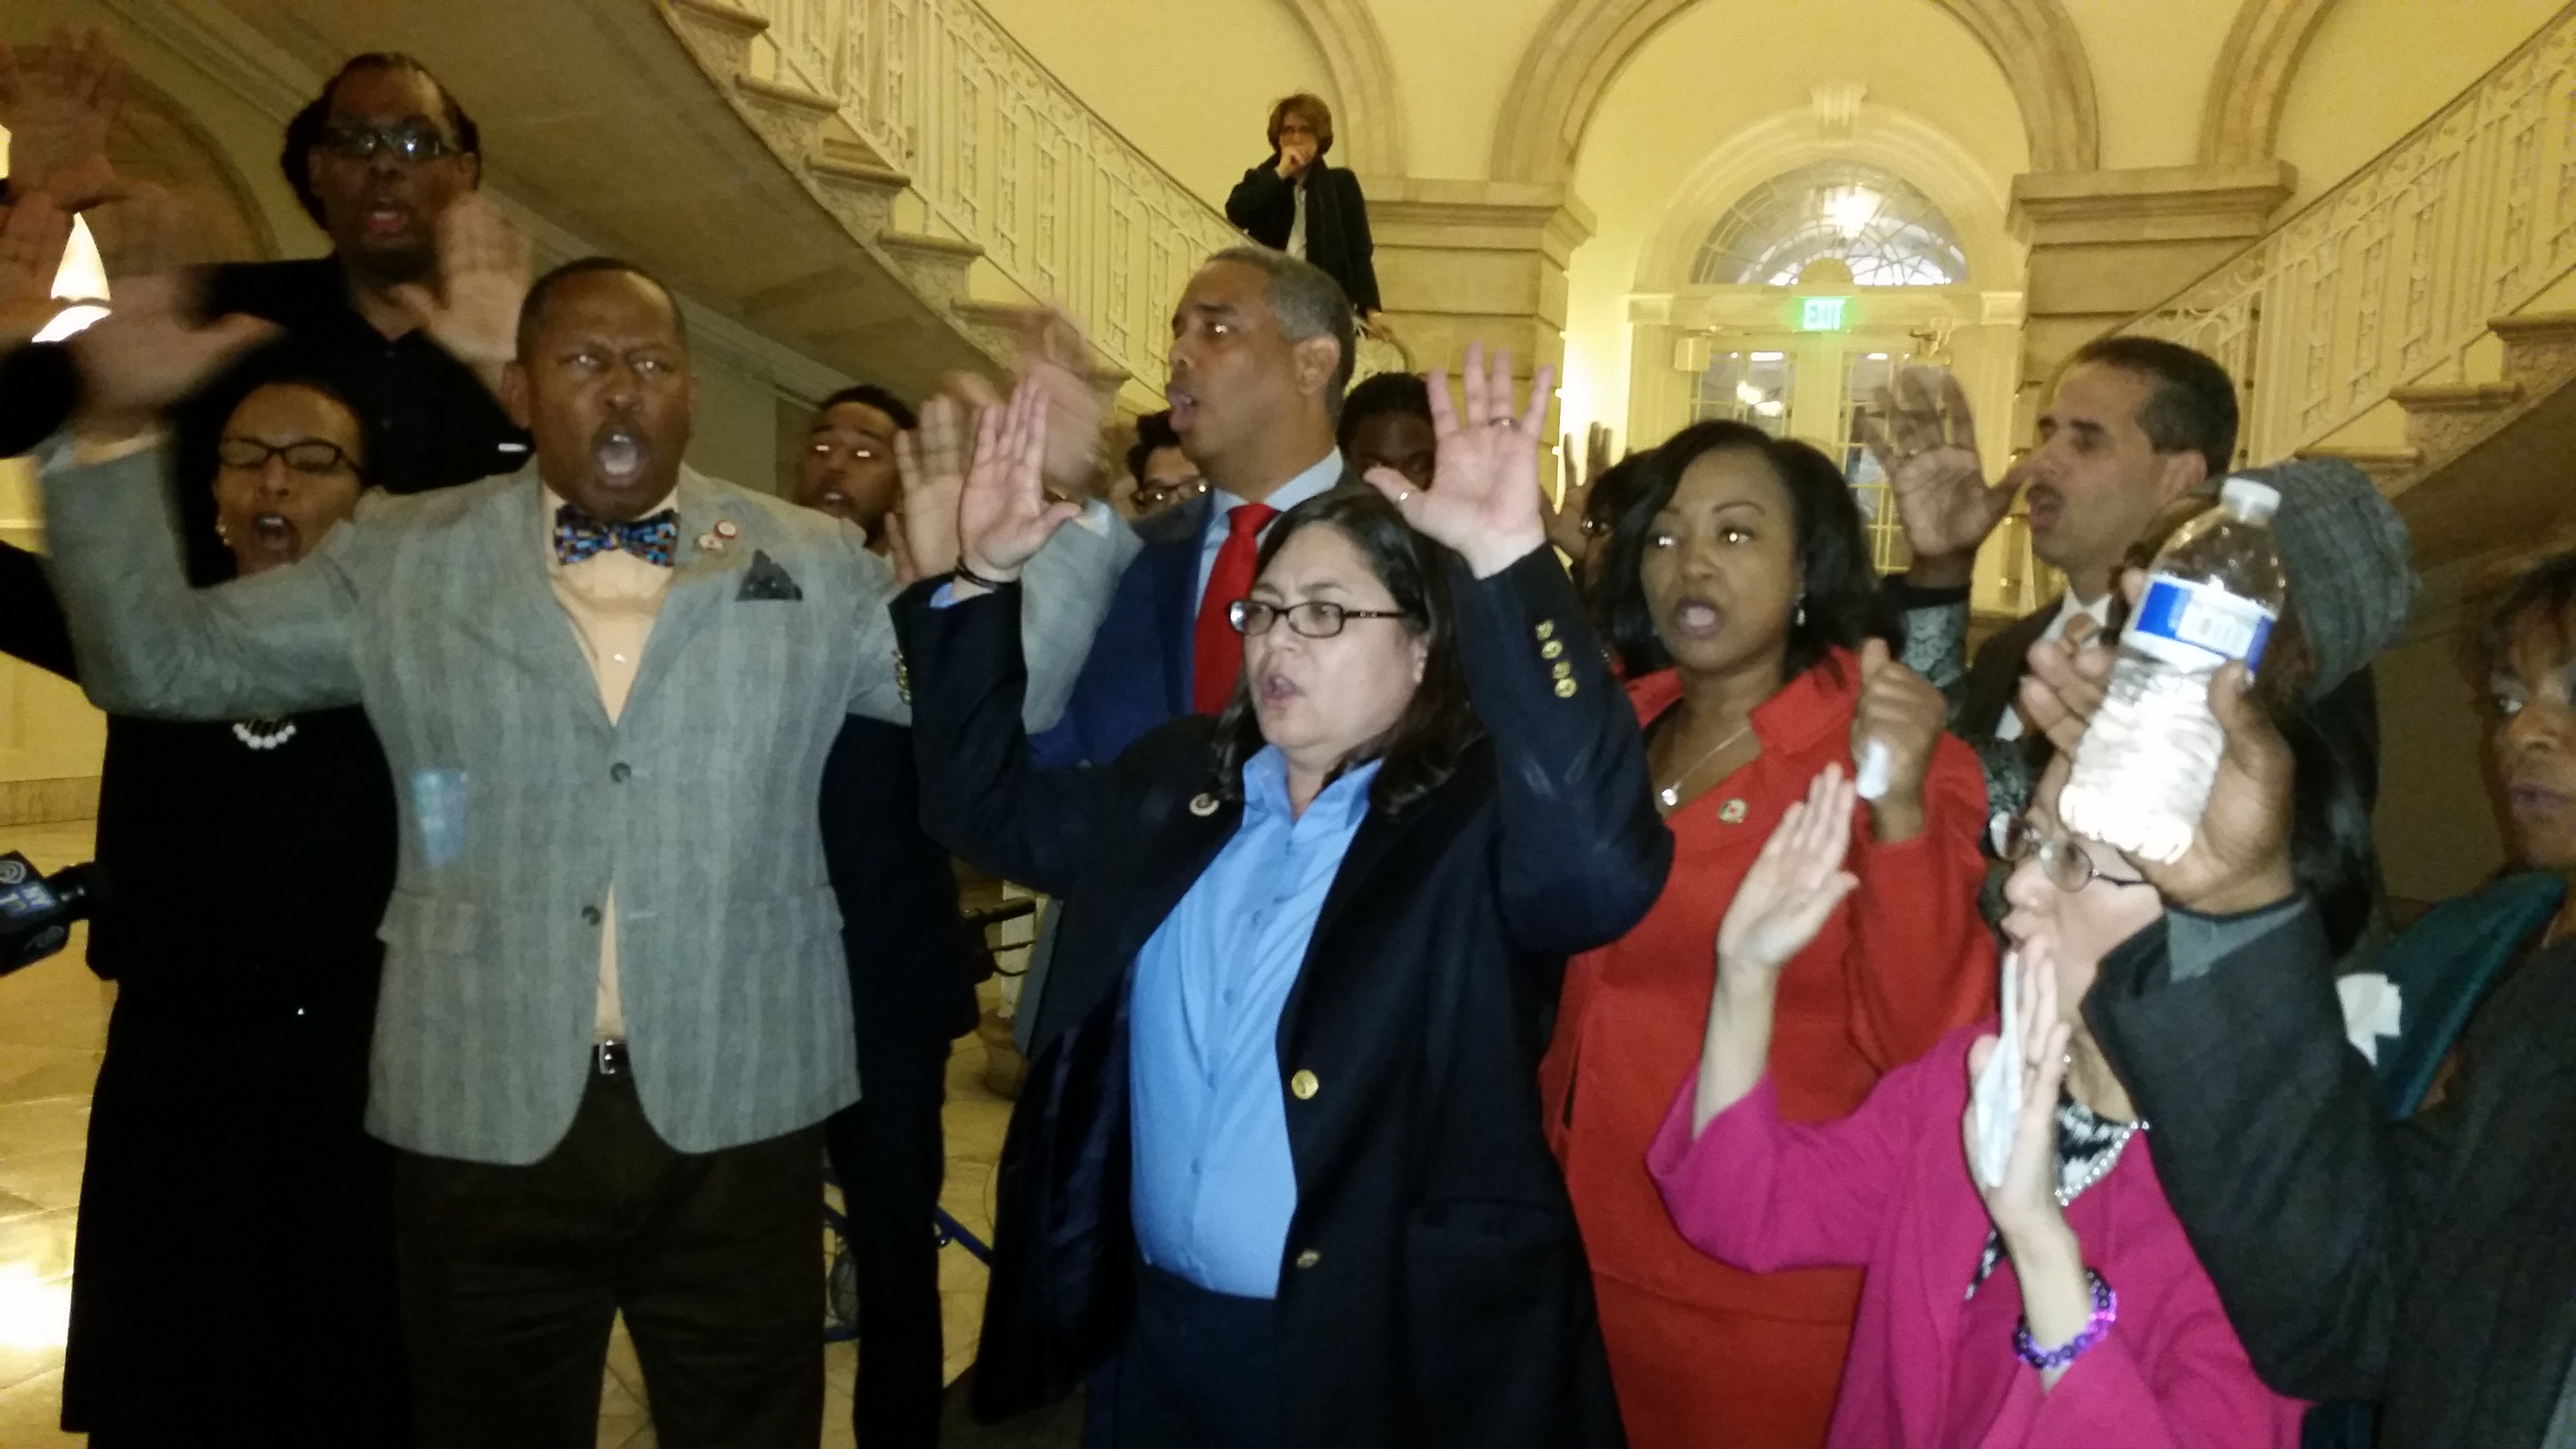 The City Council members protesting the Ferguson decision today. (Photo: Ross Barkan)